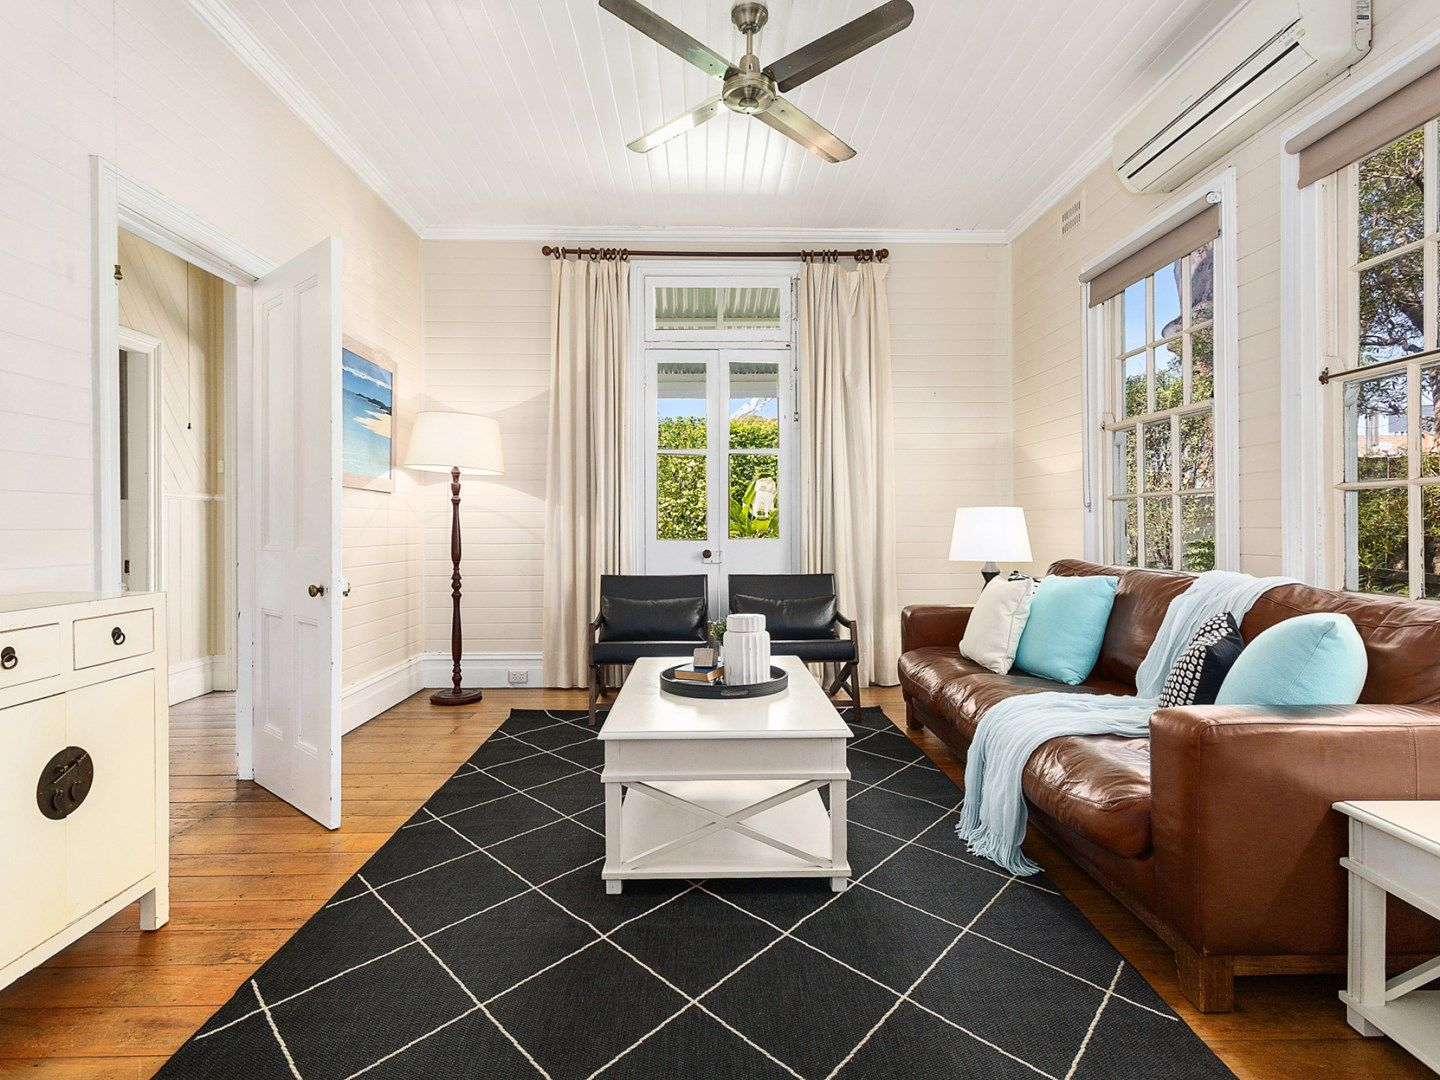 59 Palmerston Road, Hornsby NSW 2077, Image 2